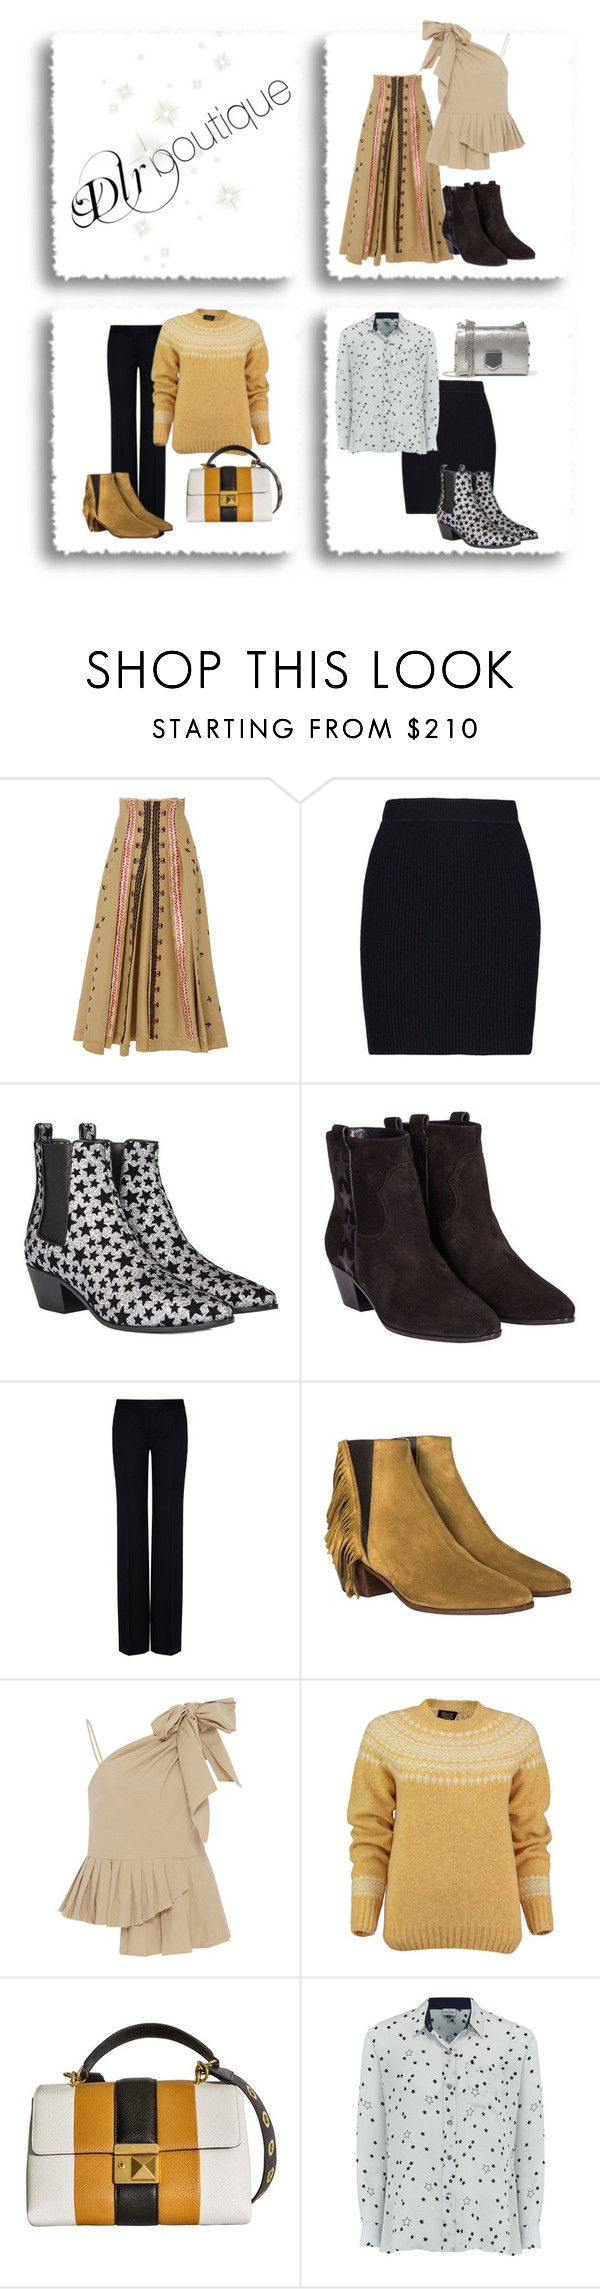 """Dlrboutique.com"" by pam-arnold on Polyvore featuring Helmut Lang, Yves Saint Laurent, STELLA McCARTNEY, Sea, New York, Lowie, Sonia Rykiel, Mercy Delta, Jimmy Choo and drlboutique"